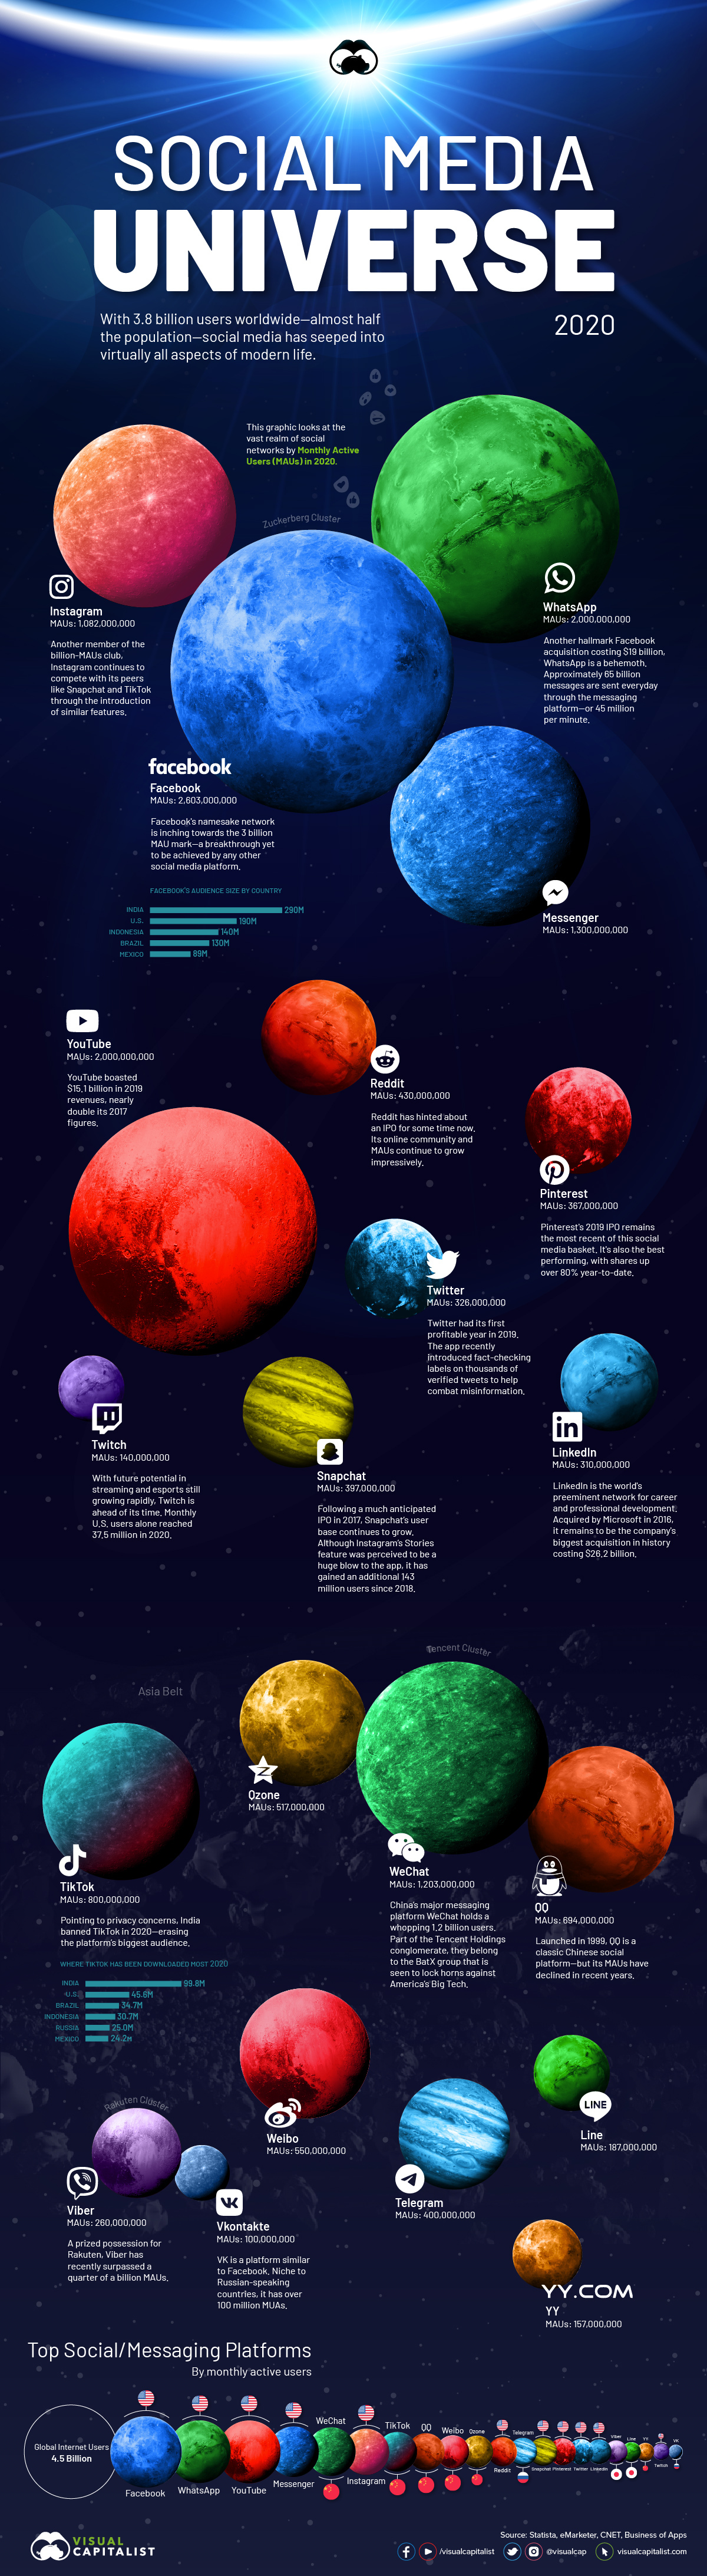 The Social Media Universe 2020 by Visual Capitalist